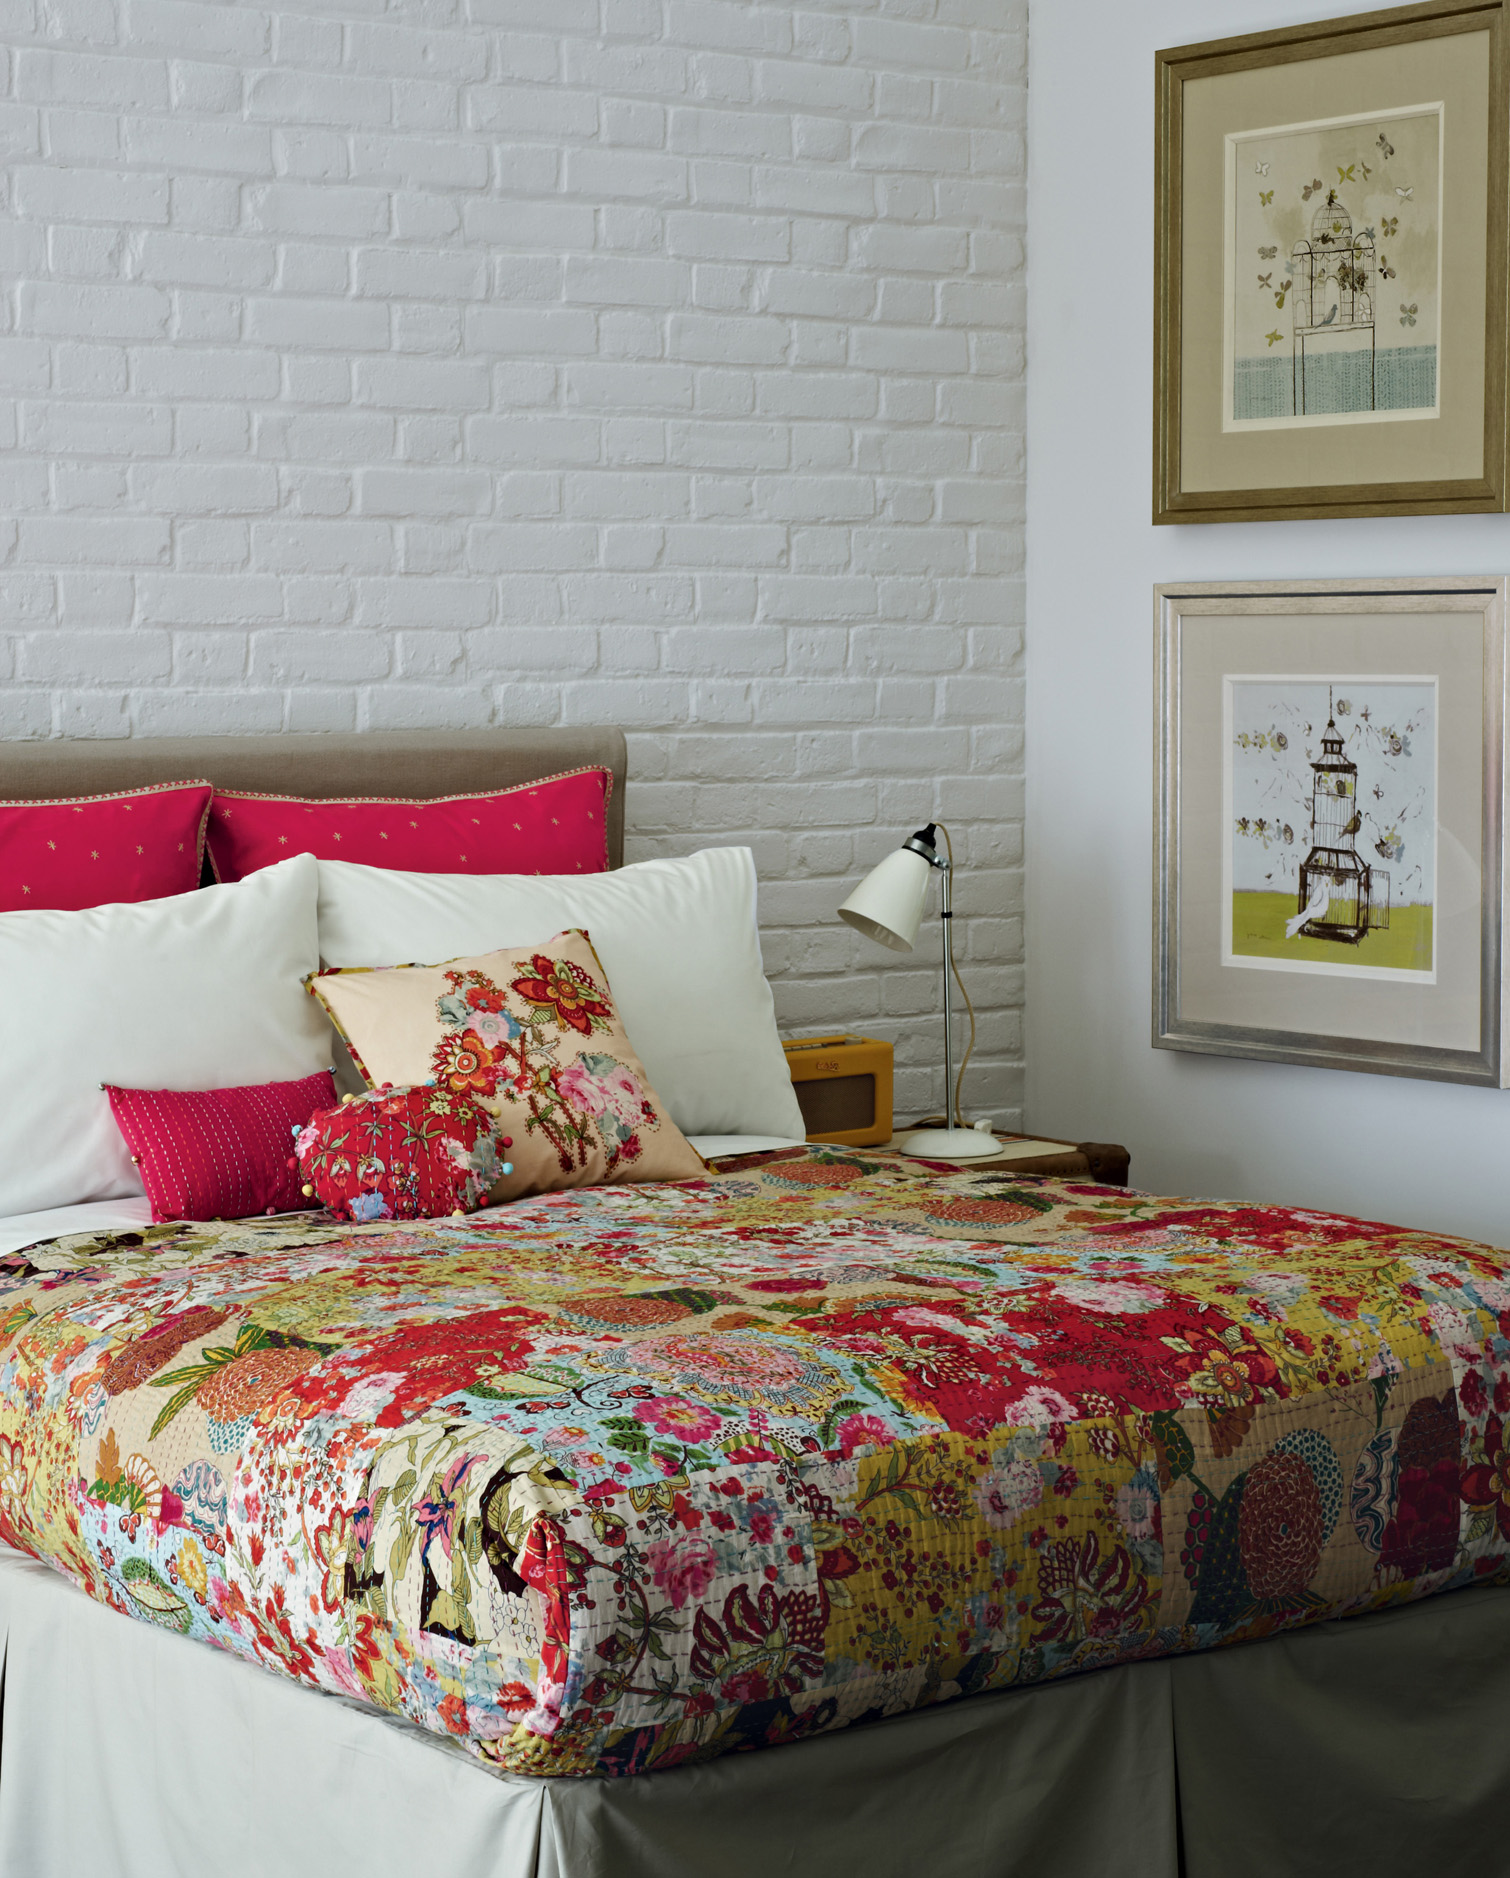 Ethnic Moroccan Bedspread Delivers More Alive And Cheerful Nuance : Classic Bedroom Design With White Brick Wall Moroccan Bedspread Style